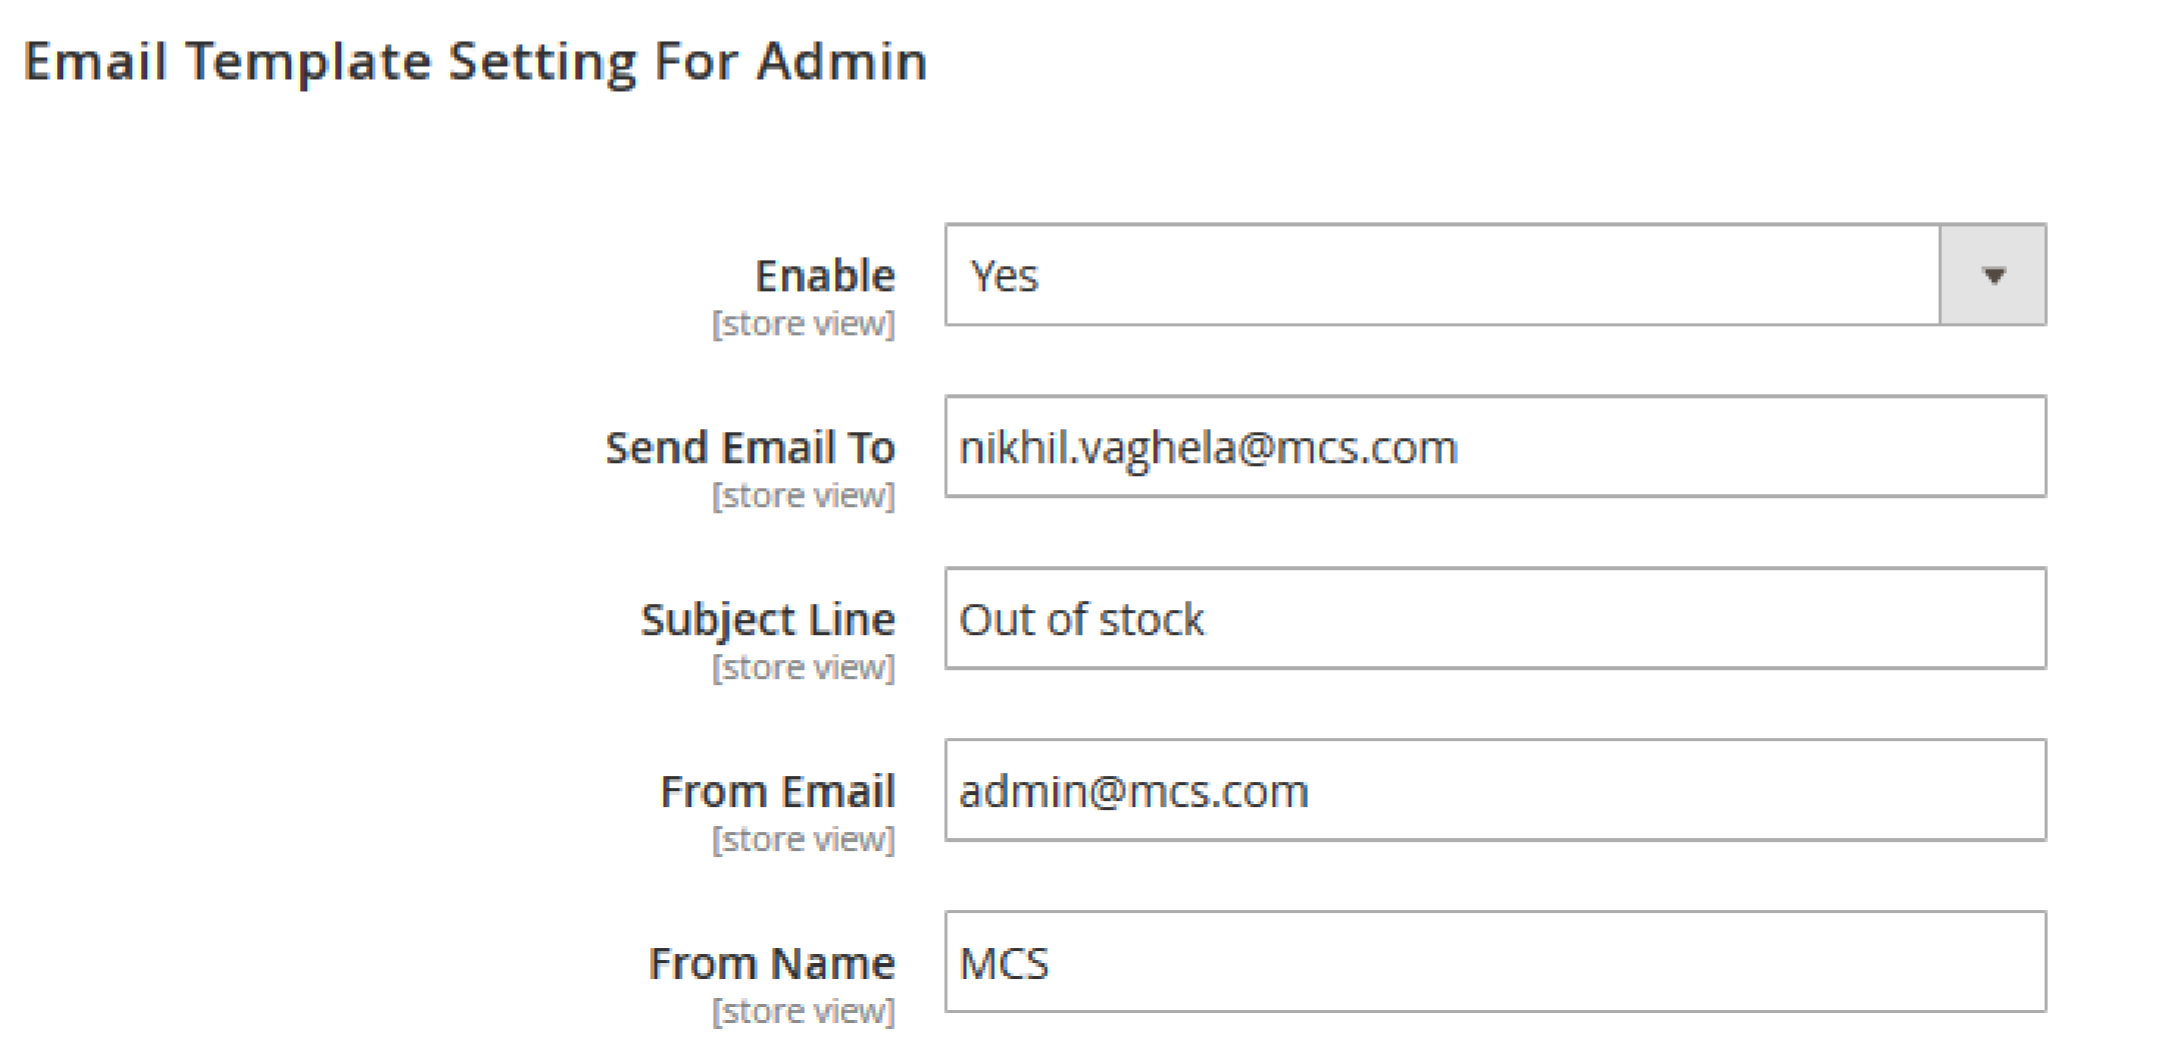 email_setting.png